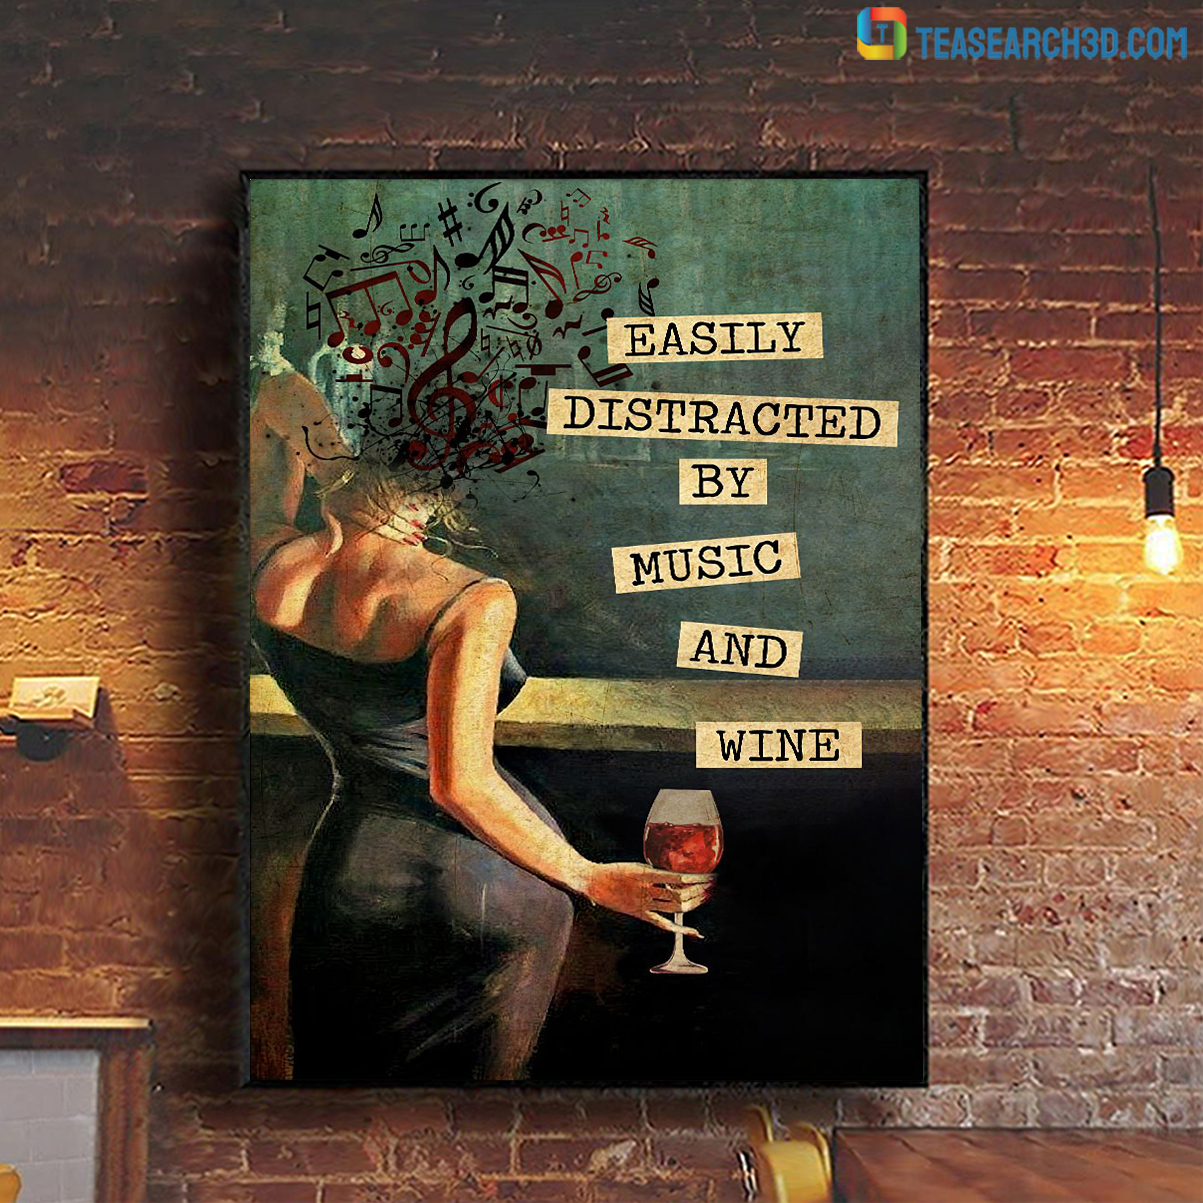 Easily distracted by music and wine vintage text poster A1